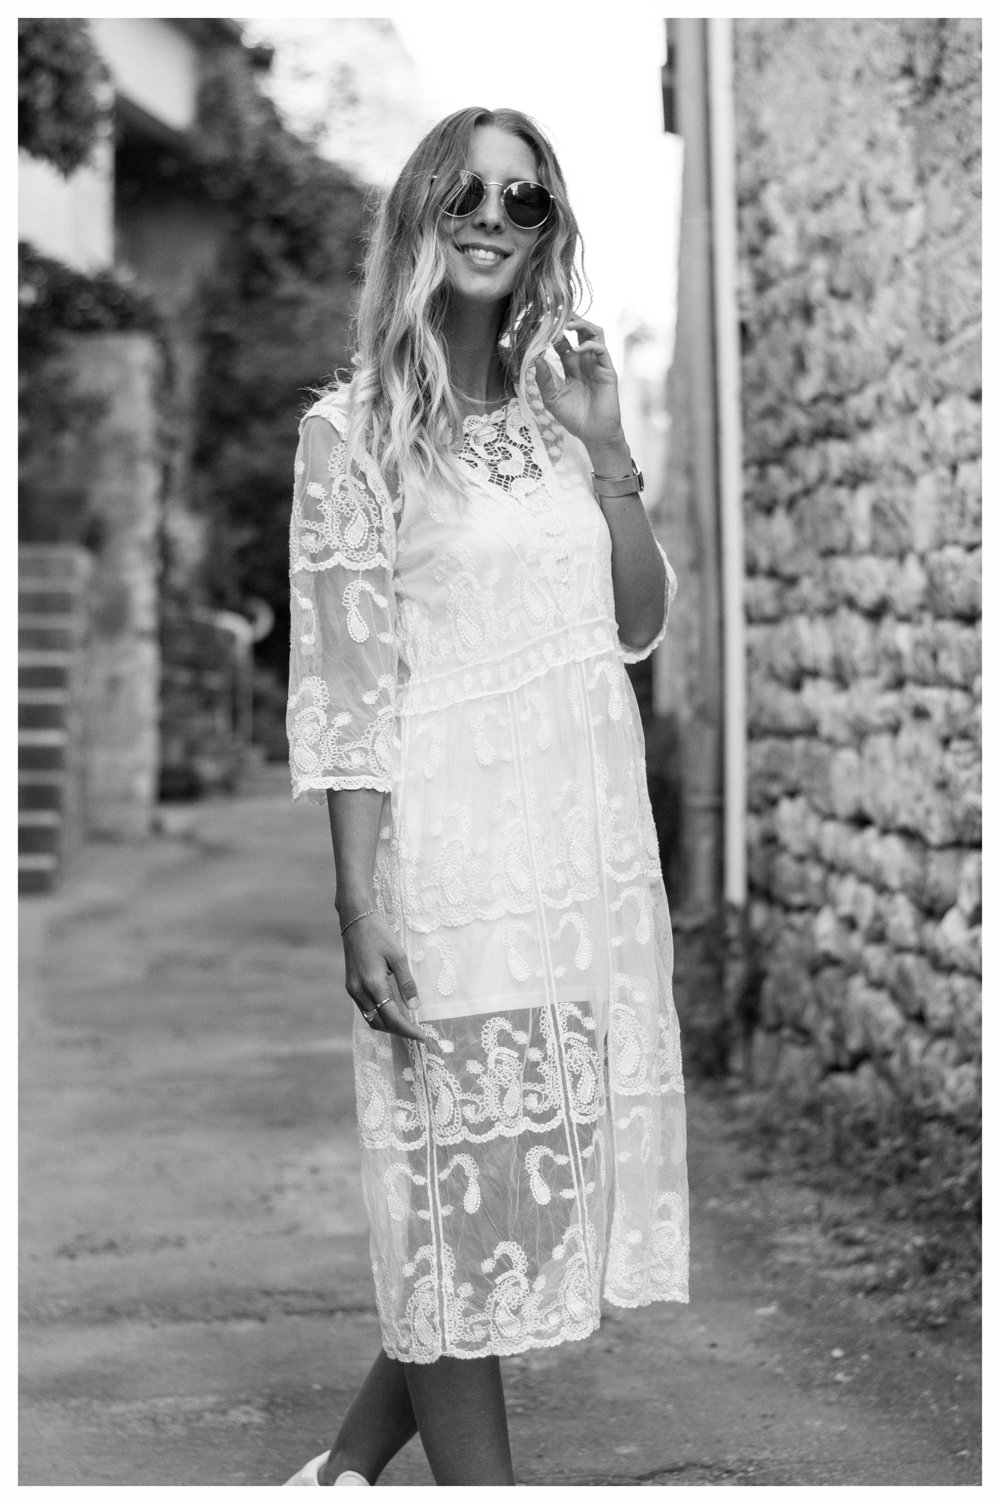 Cornillon White Dress June - OSIARAH.COM (12 of 27).jpg